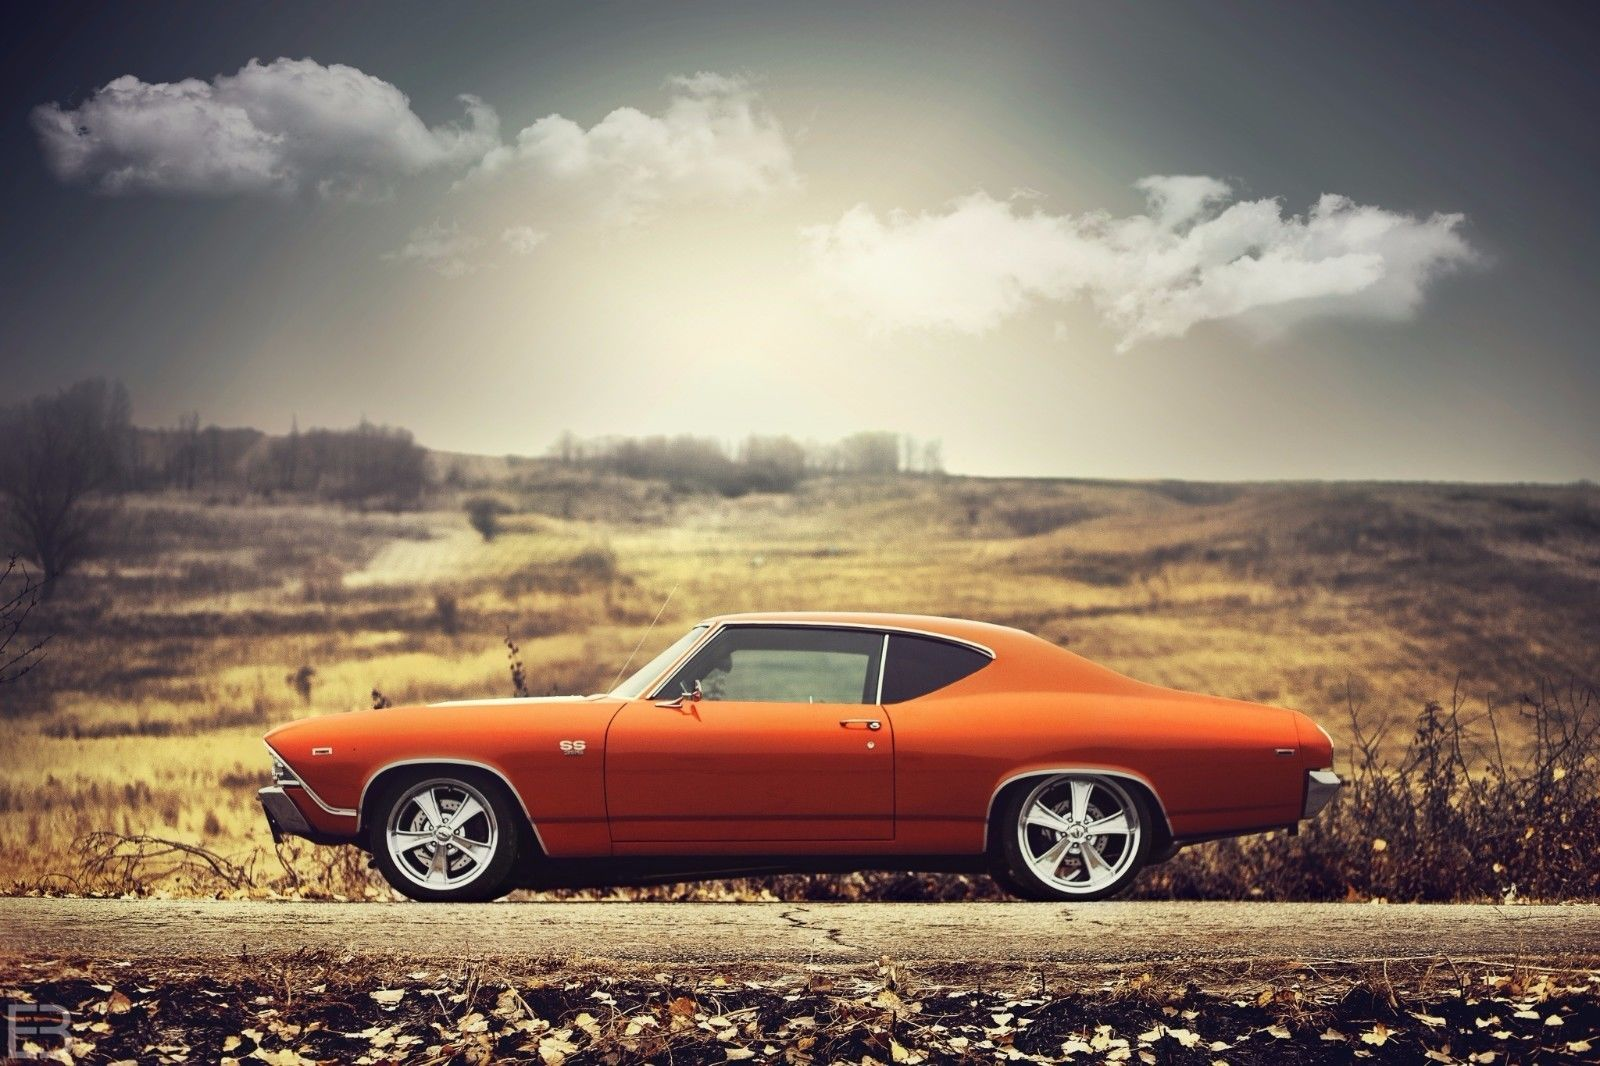 Primary image for 1969 Chevrolet Chevelle SS orange 24X36 inch poster, sports car, muscle car